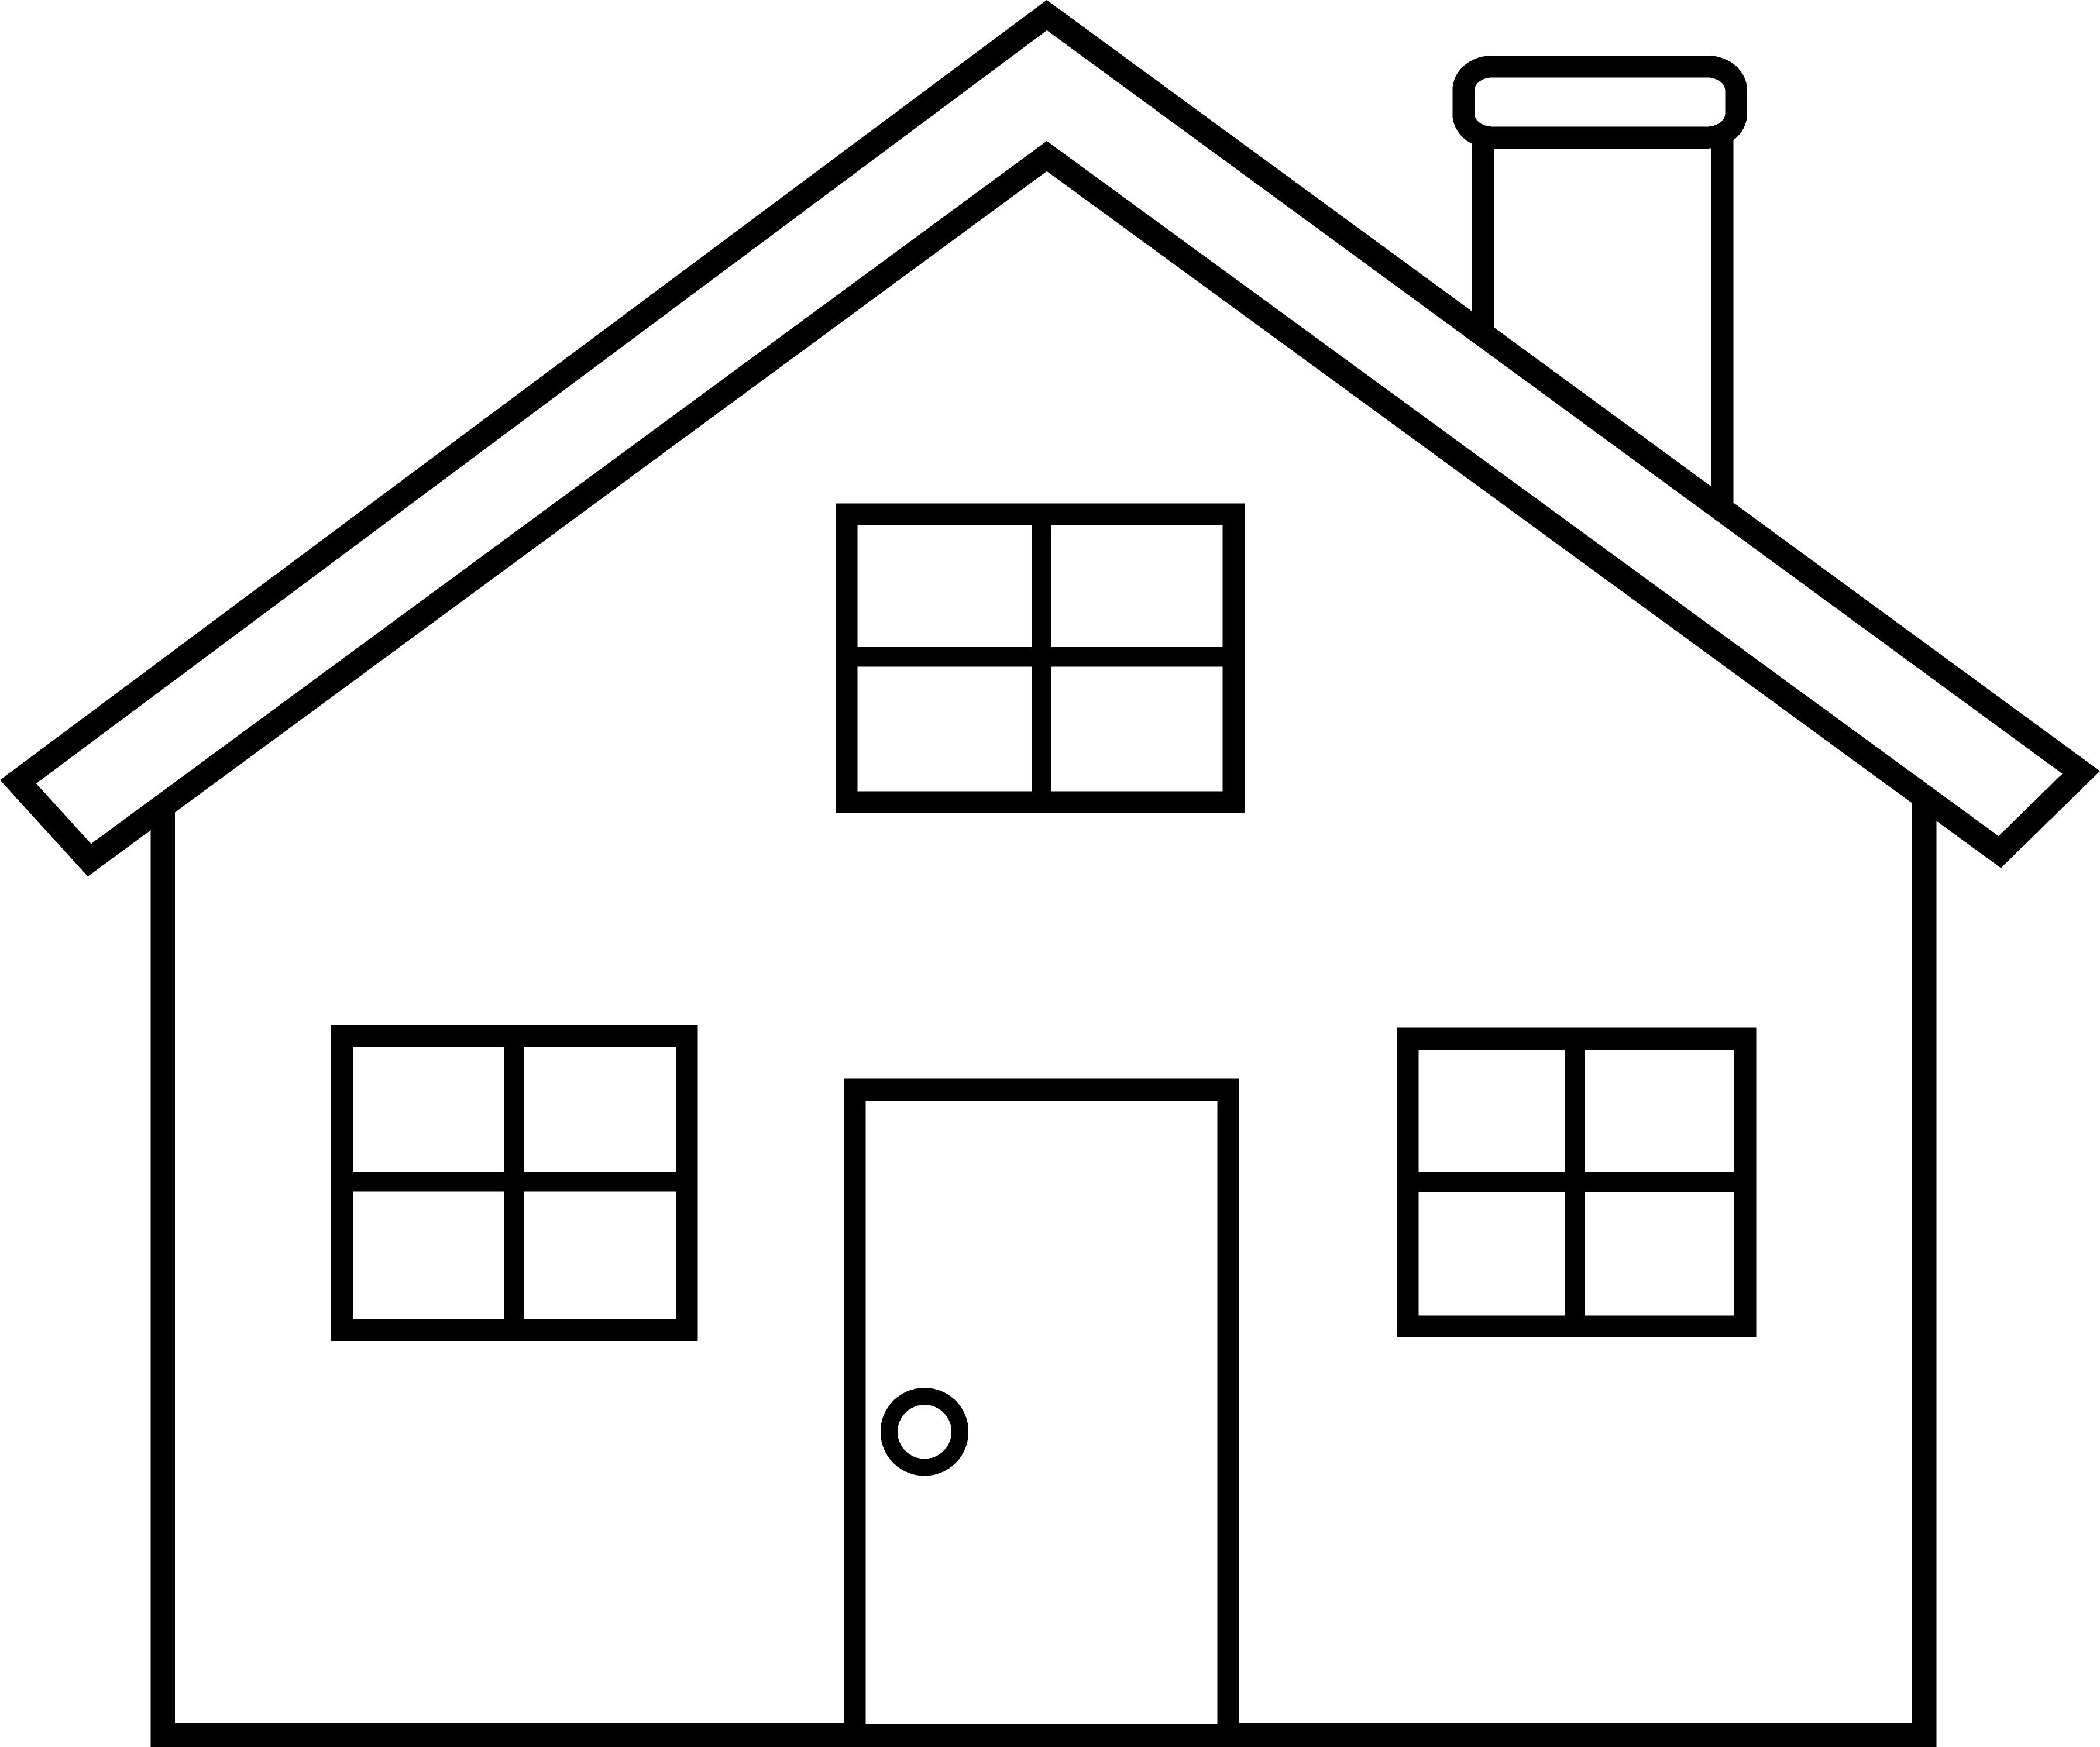 Homes vector outline. Black and white house